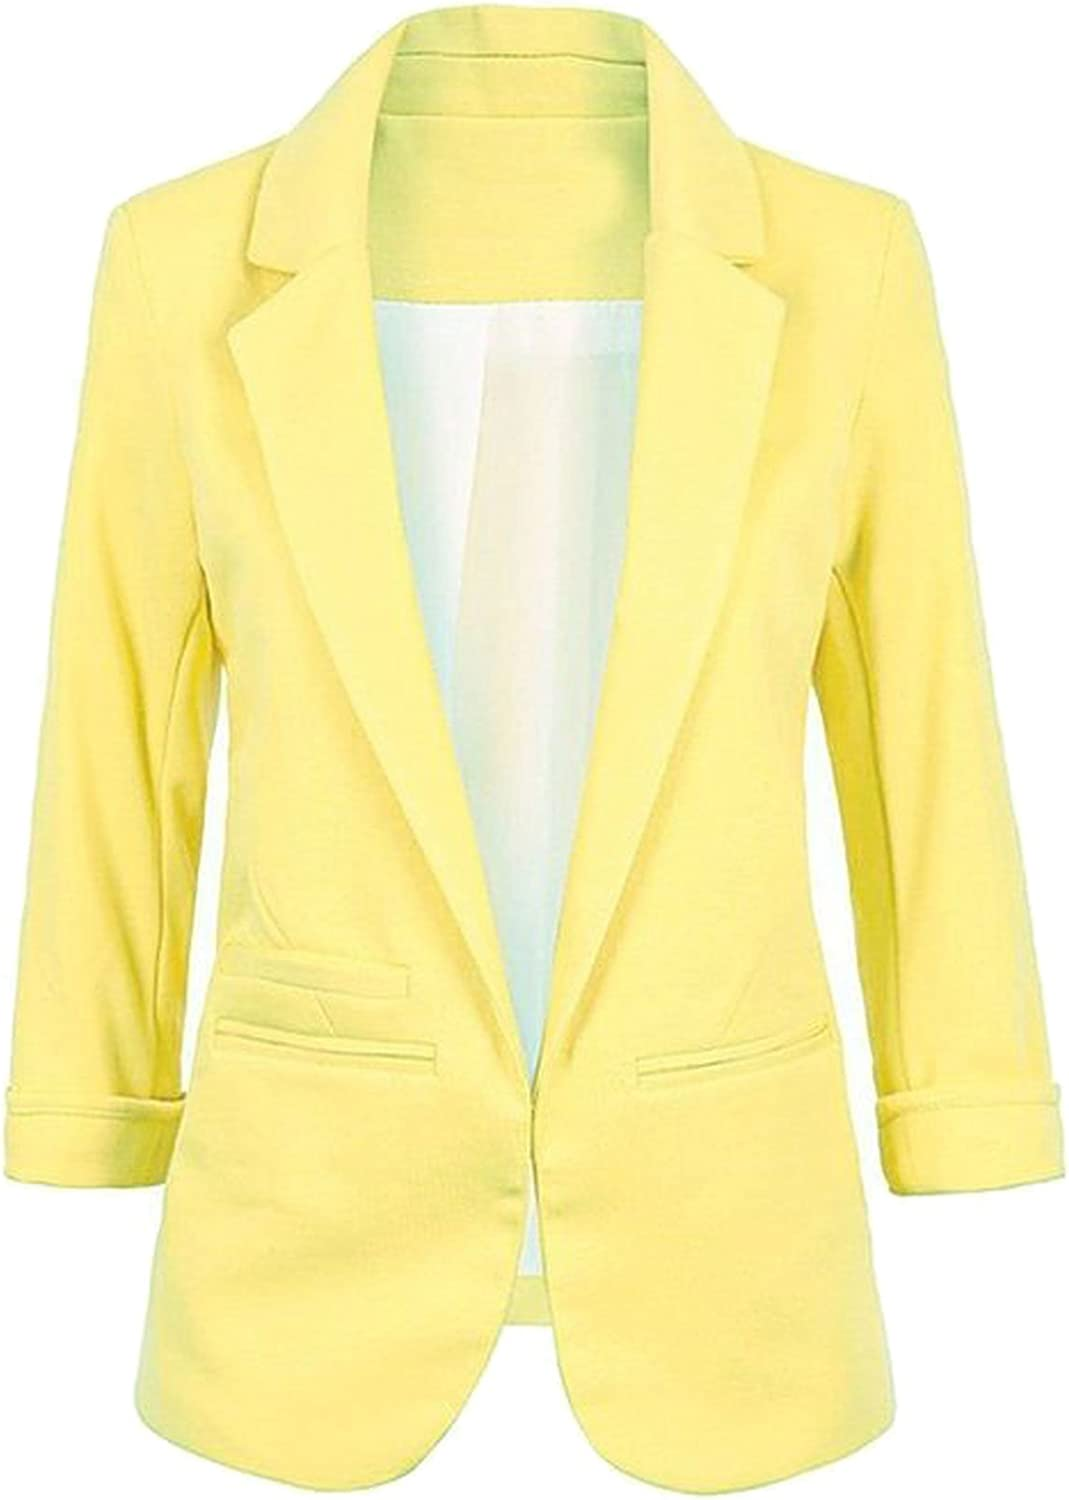 FACE N FACE Women's Cotton Rolled up Sleeve NoBuckle Blazer Jacket Suits